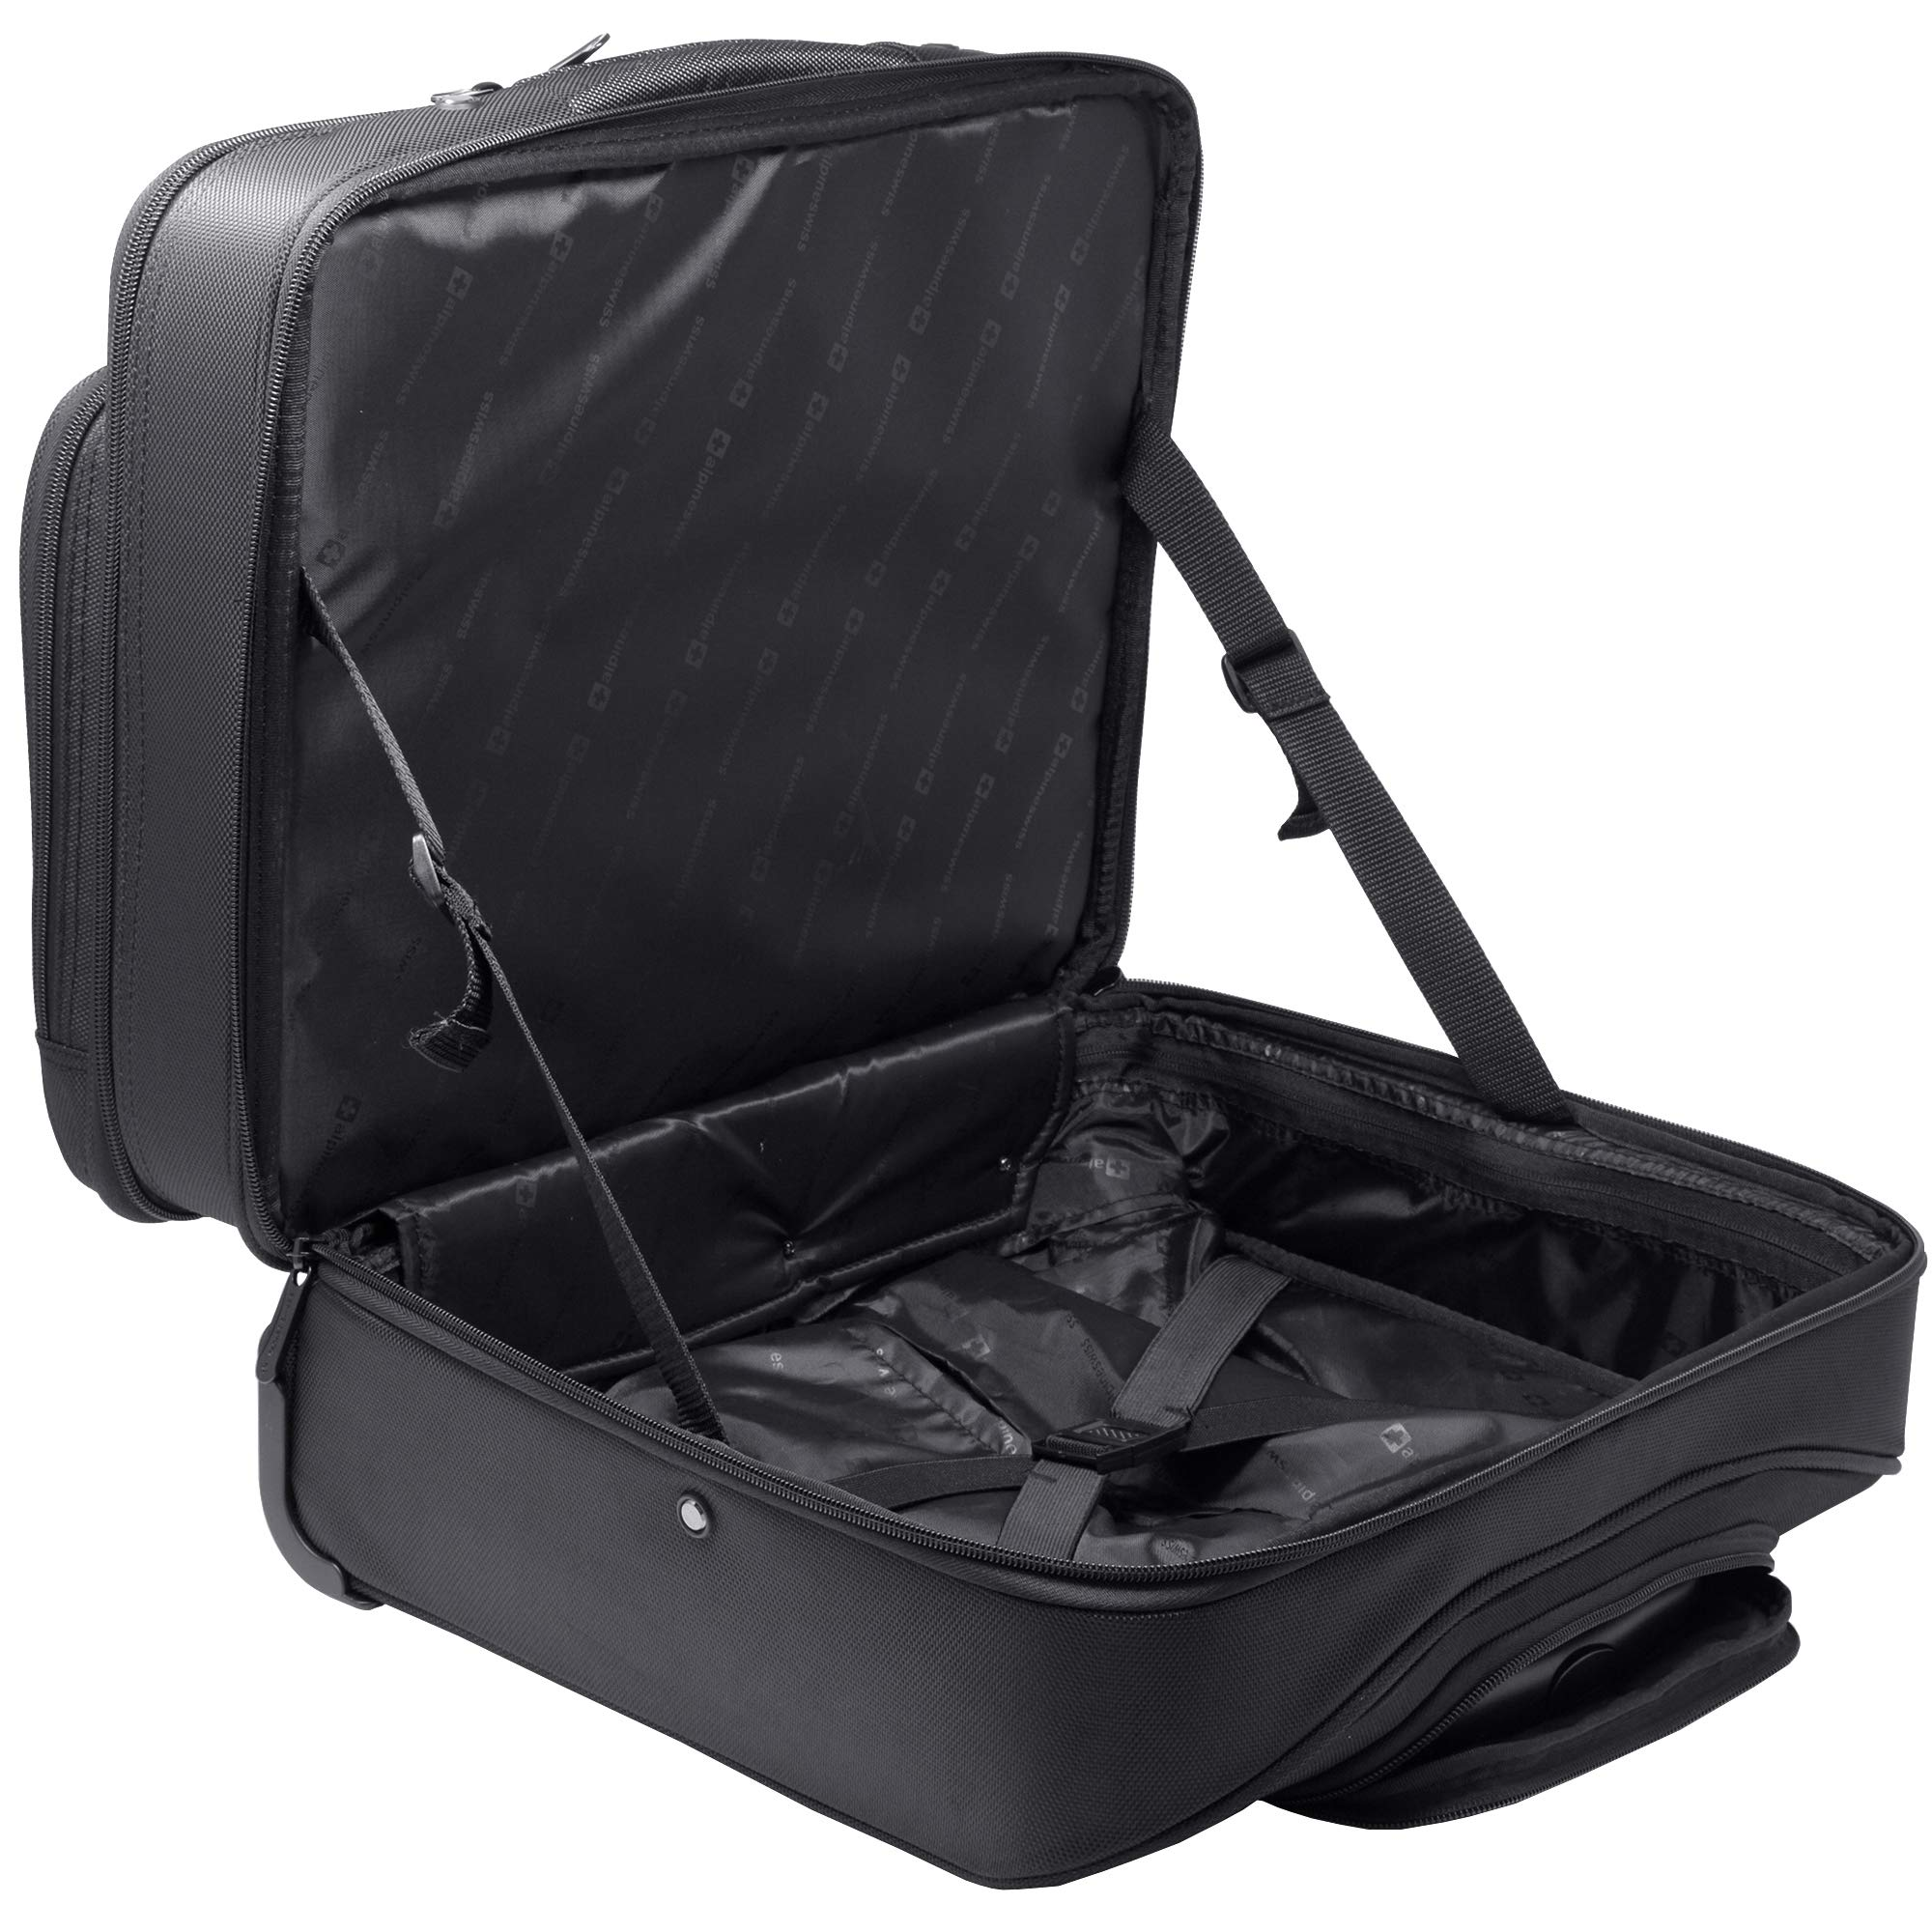 Alpine Swiss Rolling Laptop Briefcase Wheeled Overnight Carry on Bag Up to 15.6 Inches Notebook - Carries Legal Size Files by alpine swiss (Image #5)